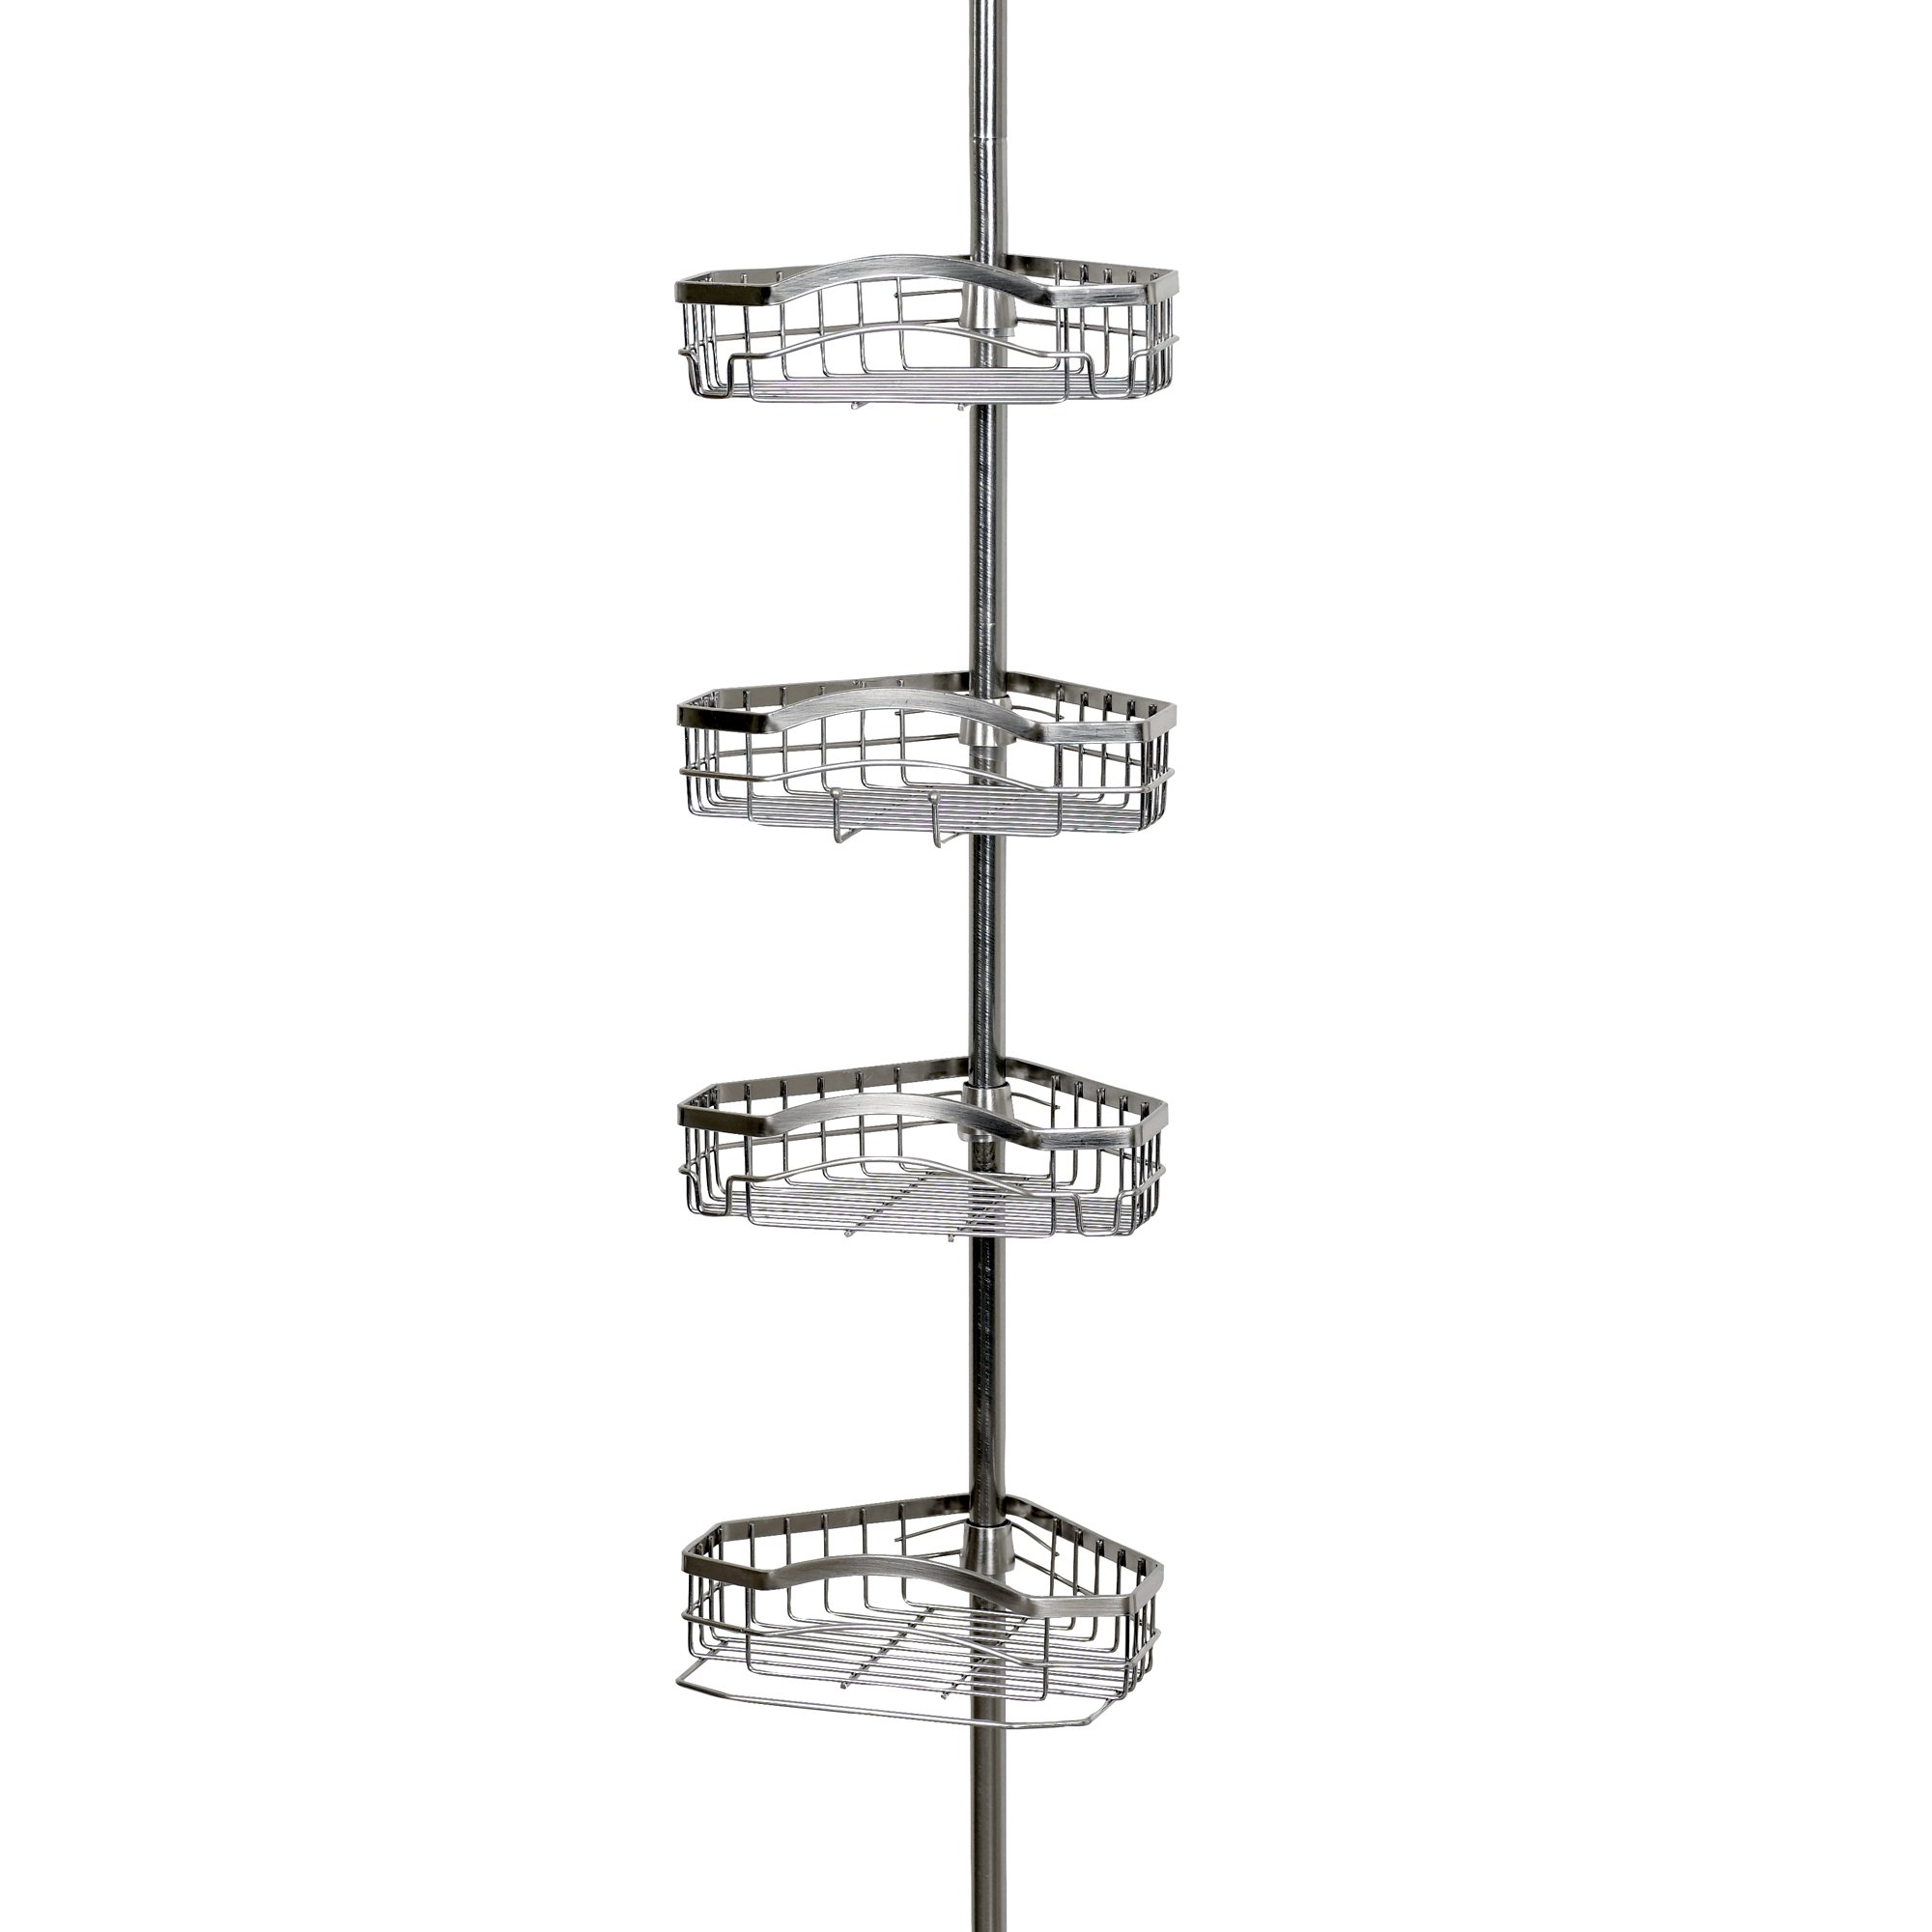 Zenna Home 2125BN Tension Corner Pole Caddy, Brushed Nickel